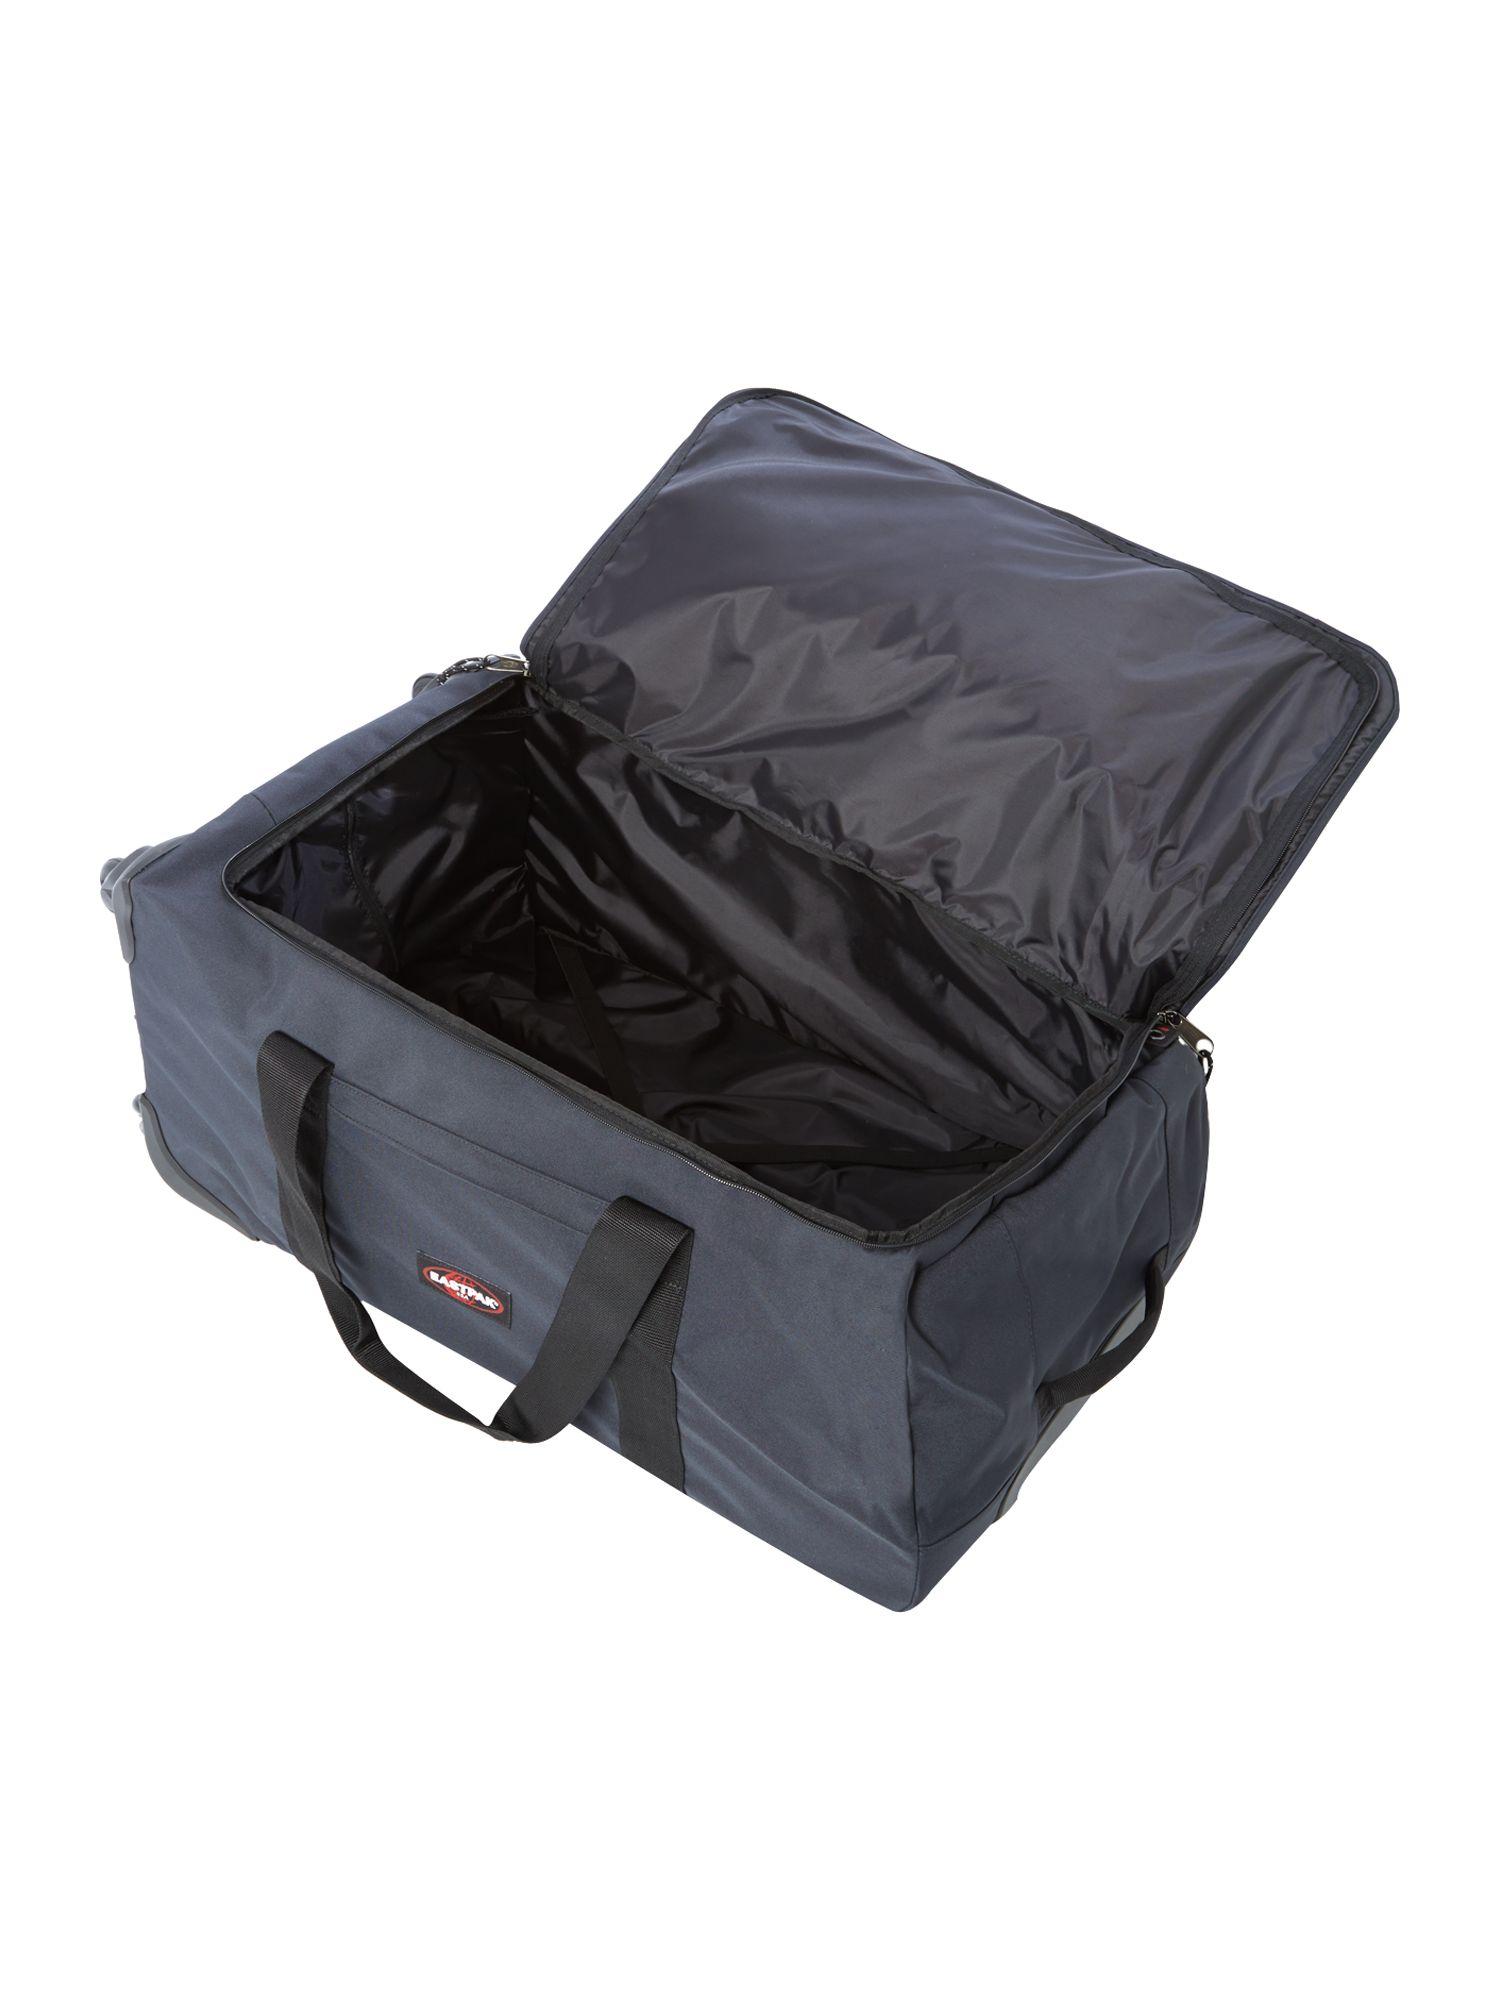 Spinnerz midnite blue large trolley duffle